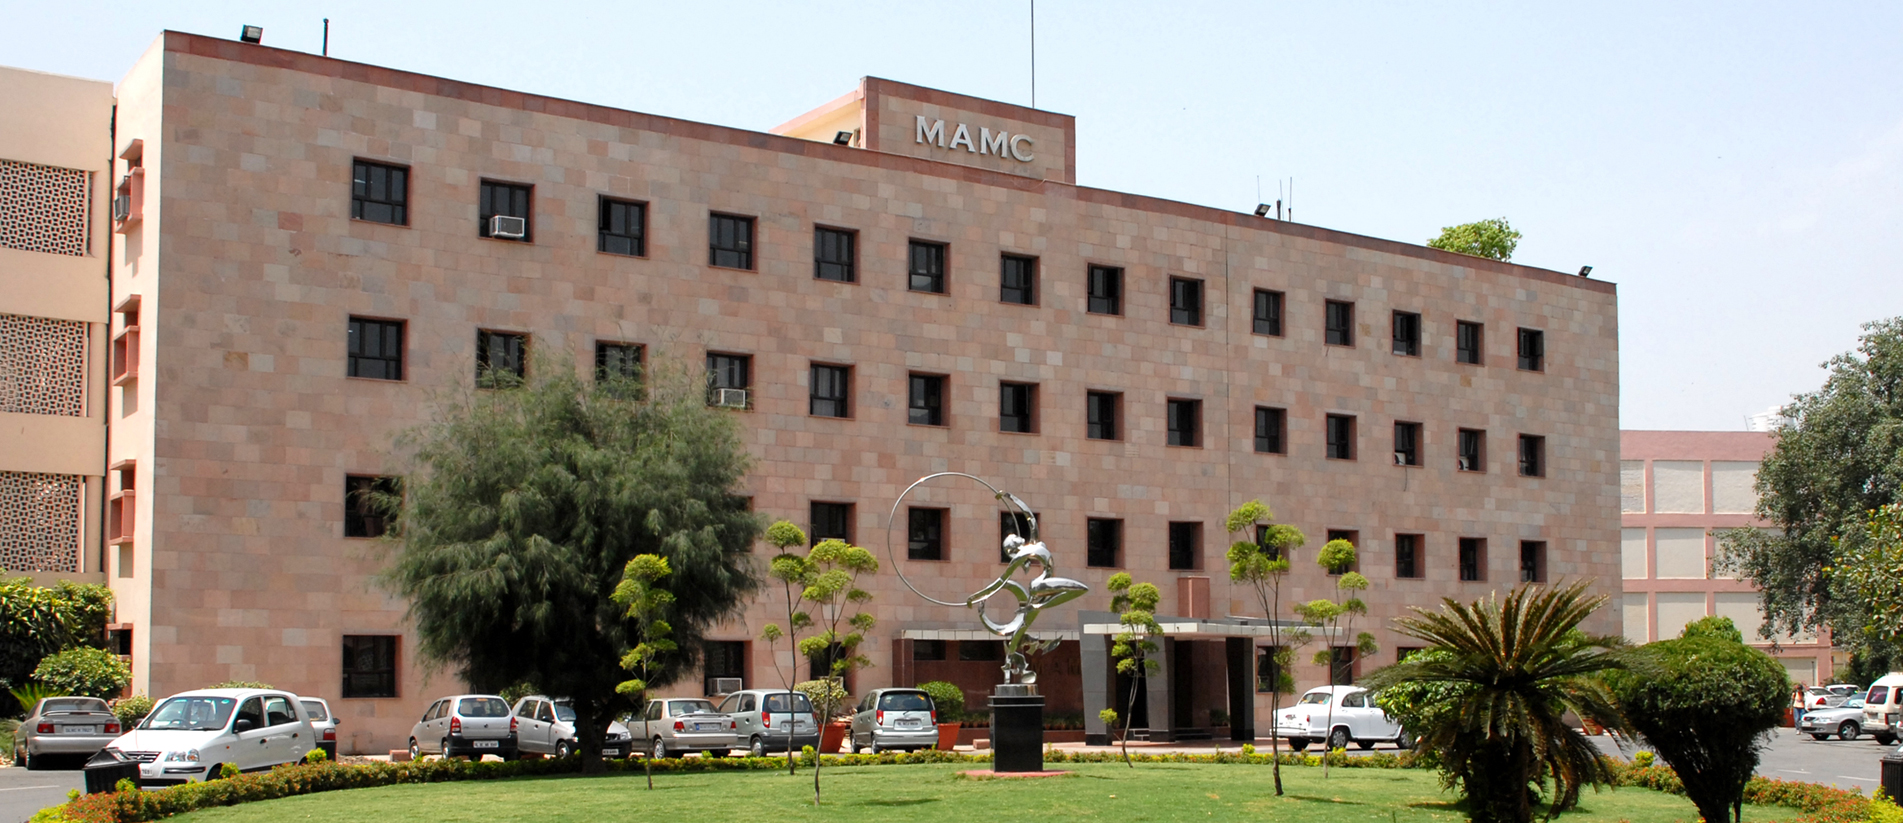 MAMC-Maulana Azad Medical College